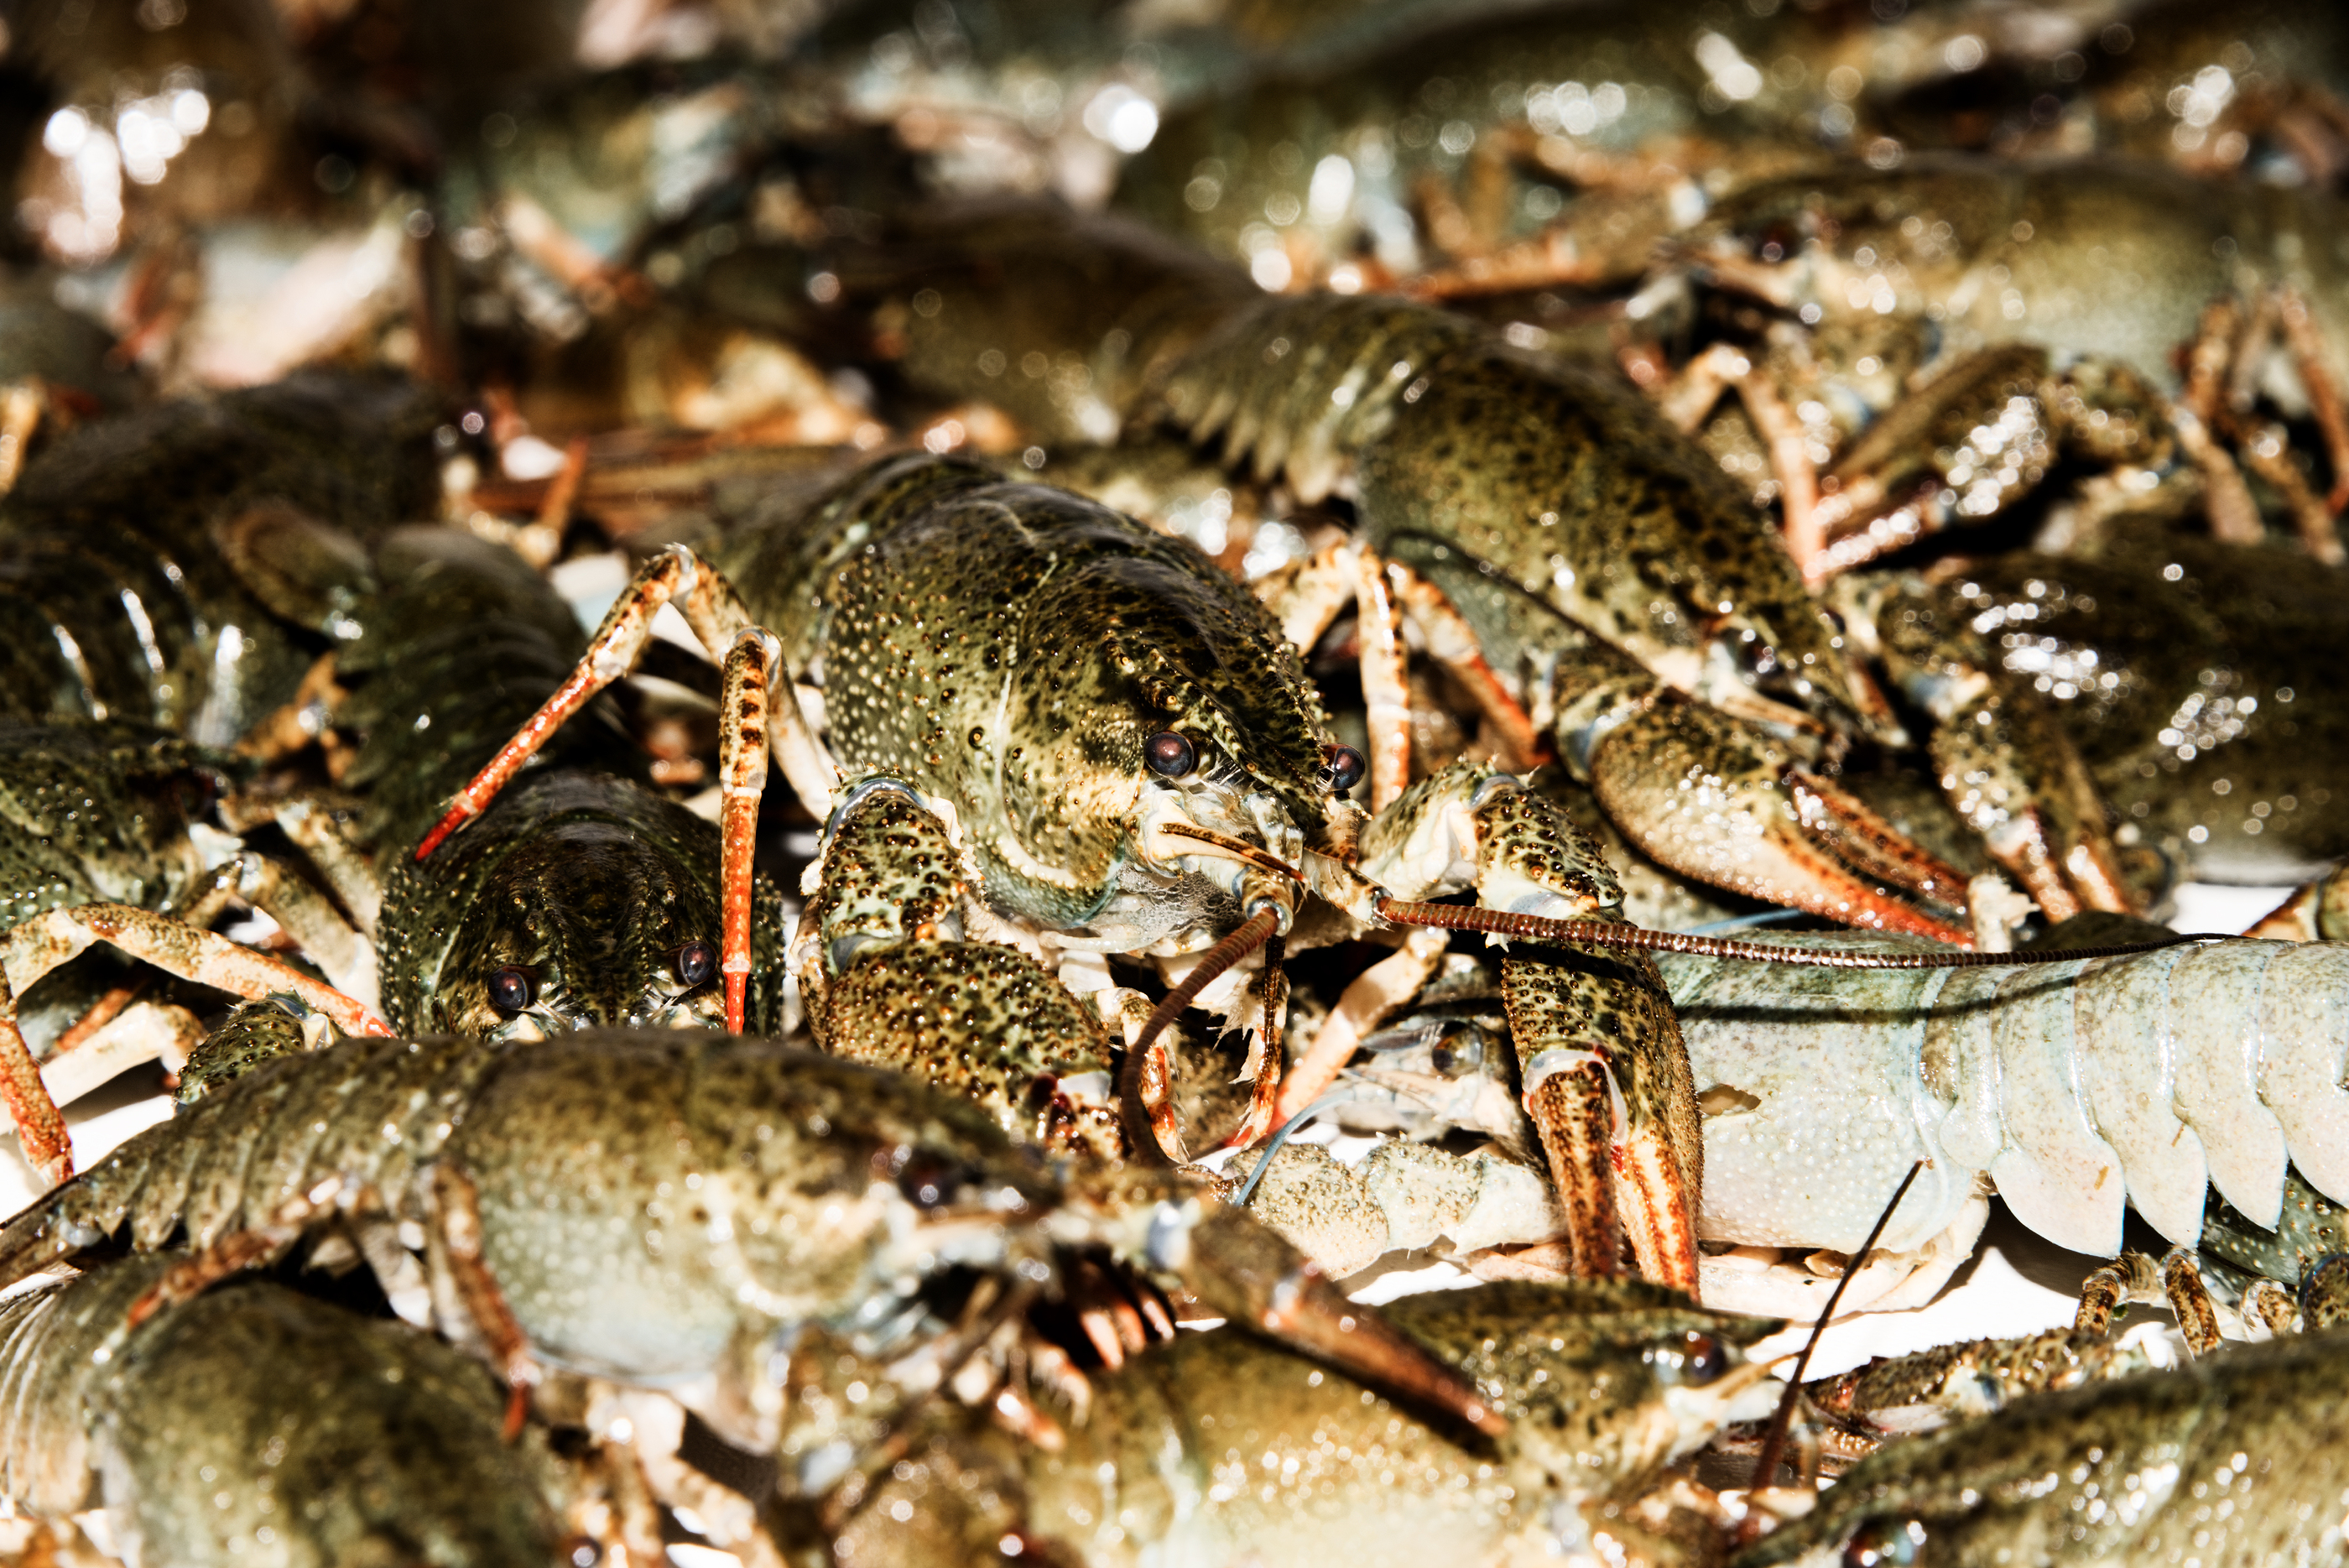 West Coast Crayfish